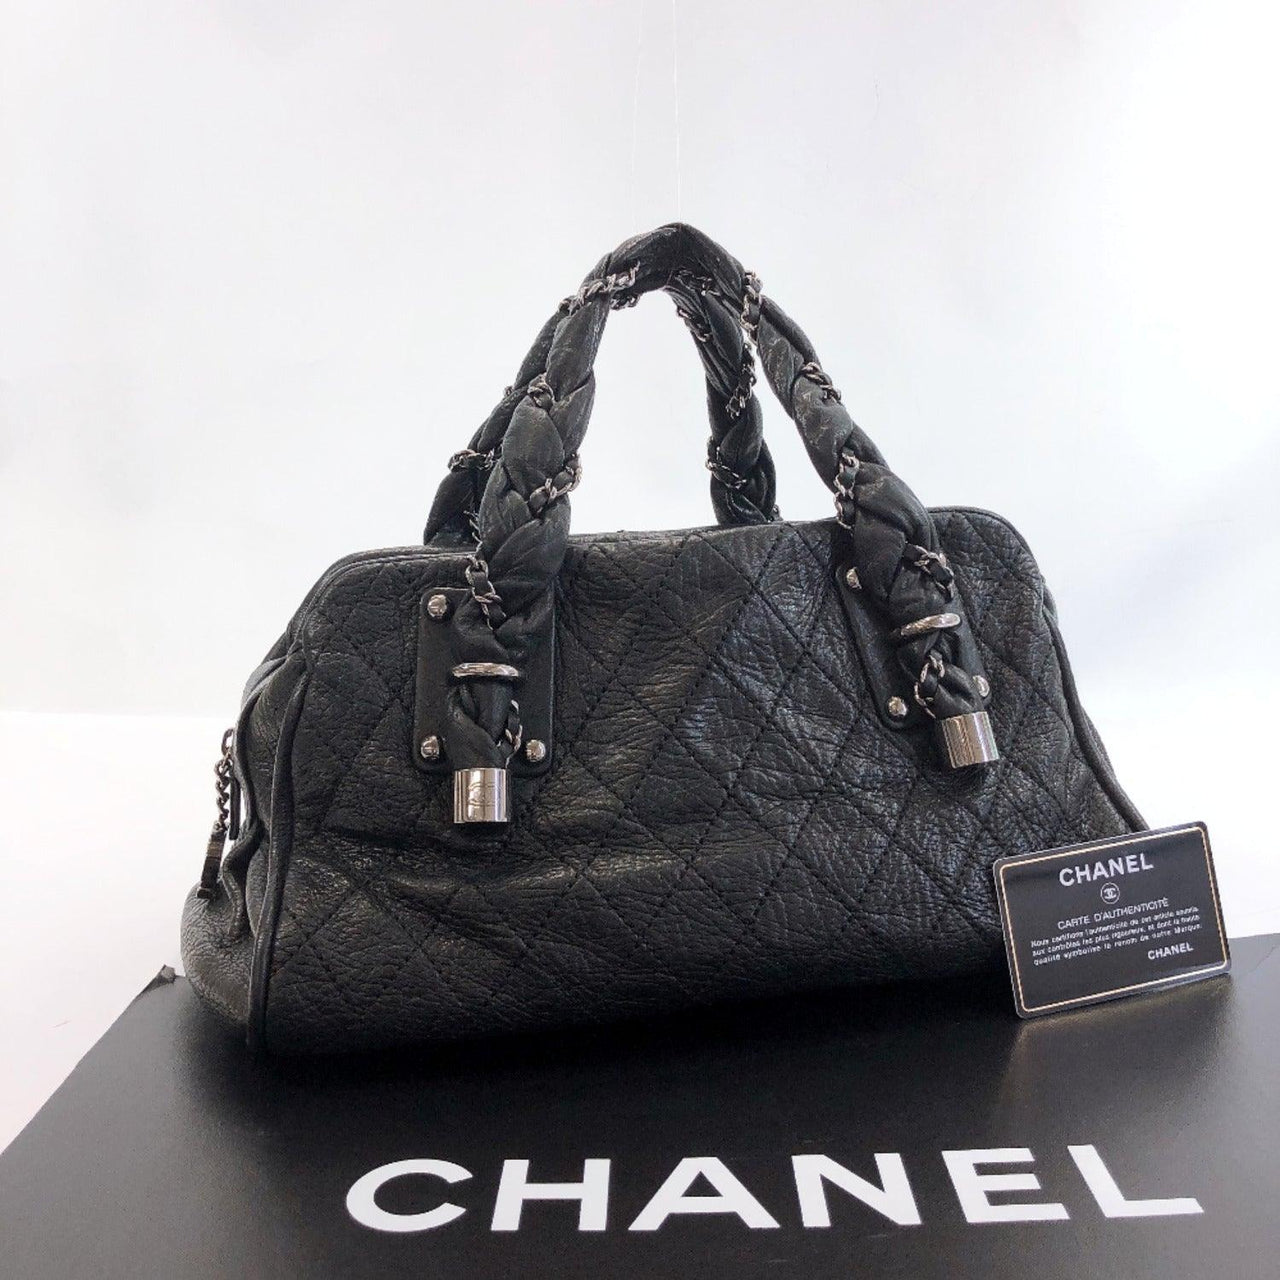 CHANEL Handbag Matelasse Luxury line leather black SilverHardware Women Used